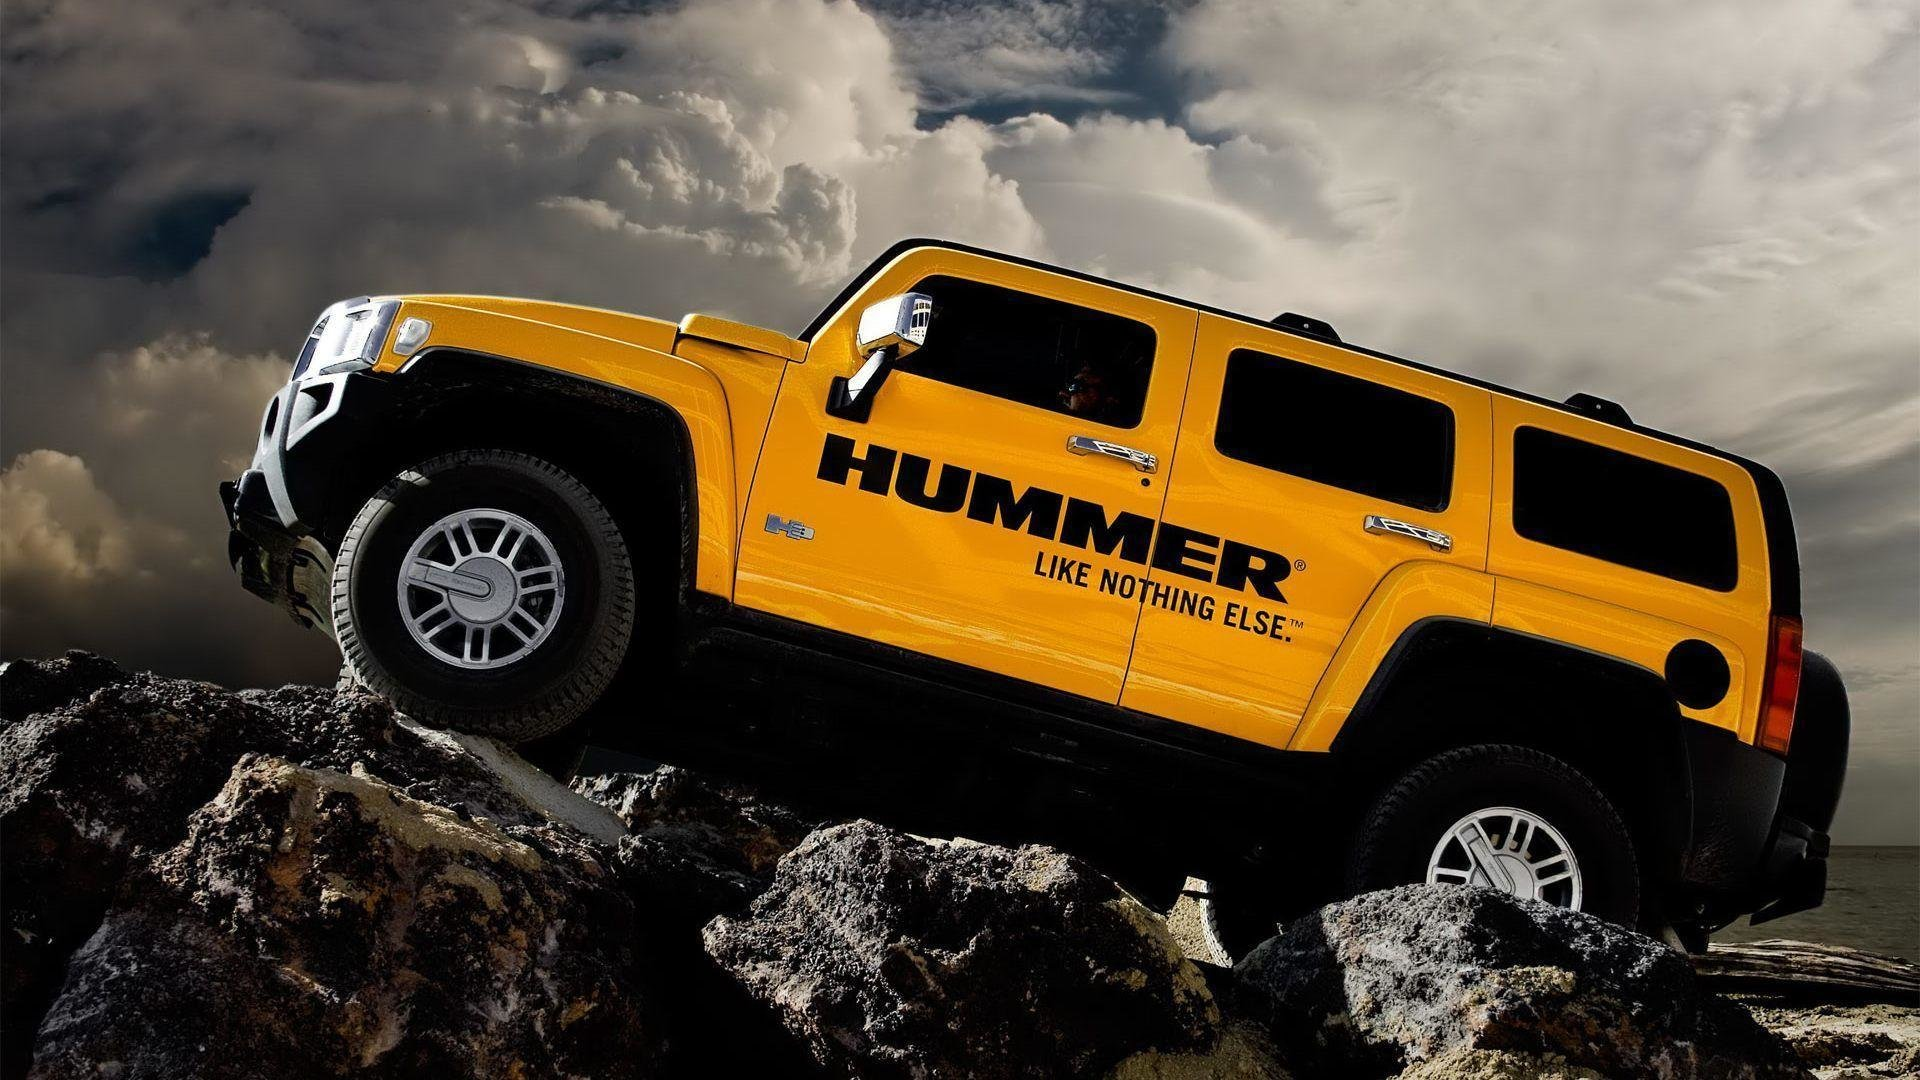 Latest Hummer Car Wallpapers 2015 Wallpaper Cave Free Download